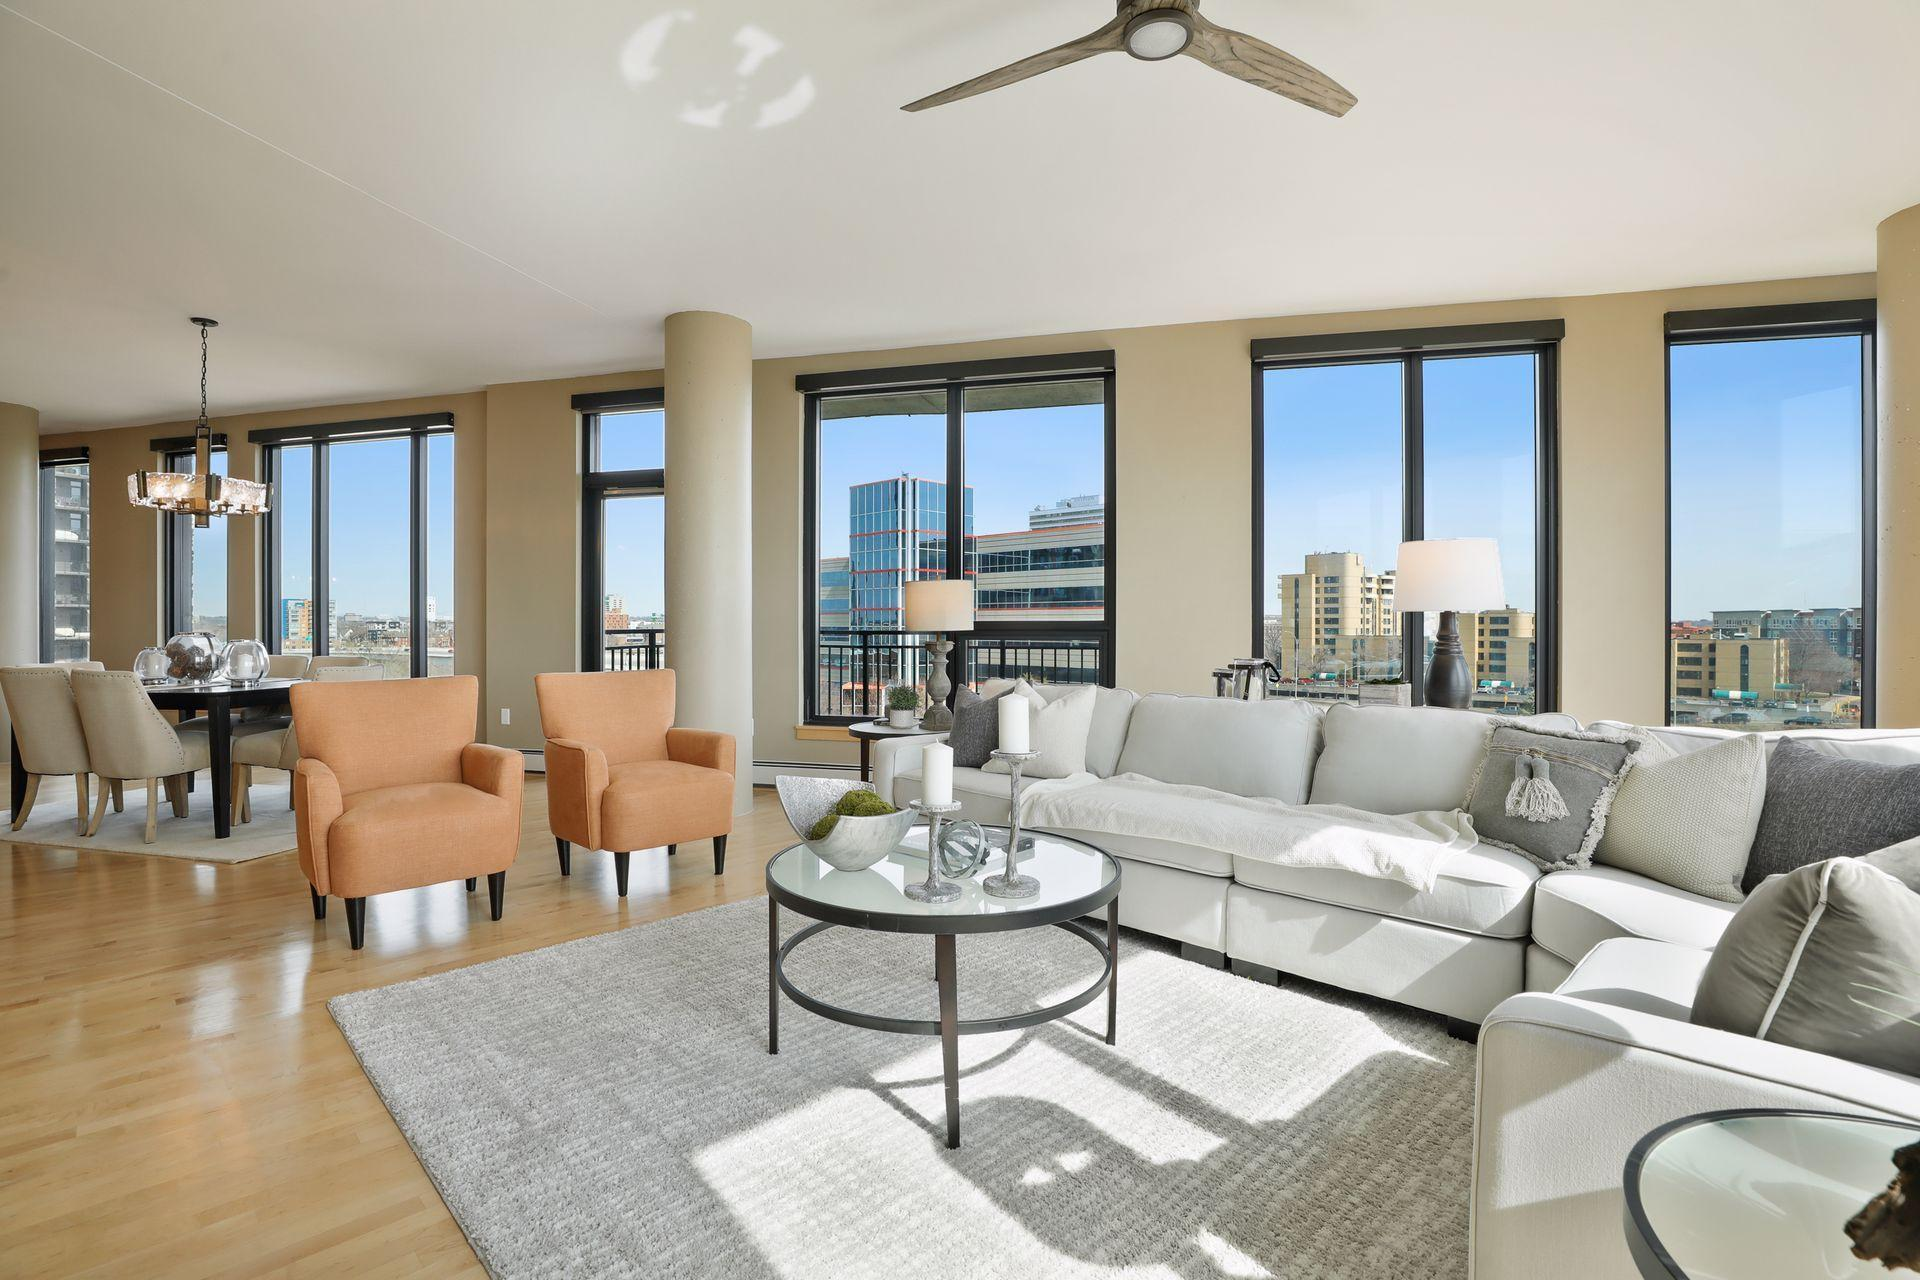 1240 S 2nd Street #501 Property Photo - Minneapolis, MN real estate listing